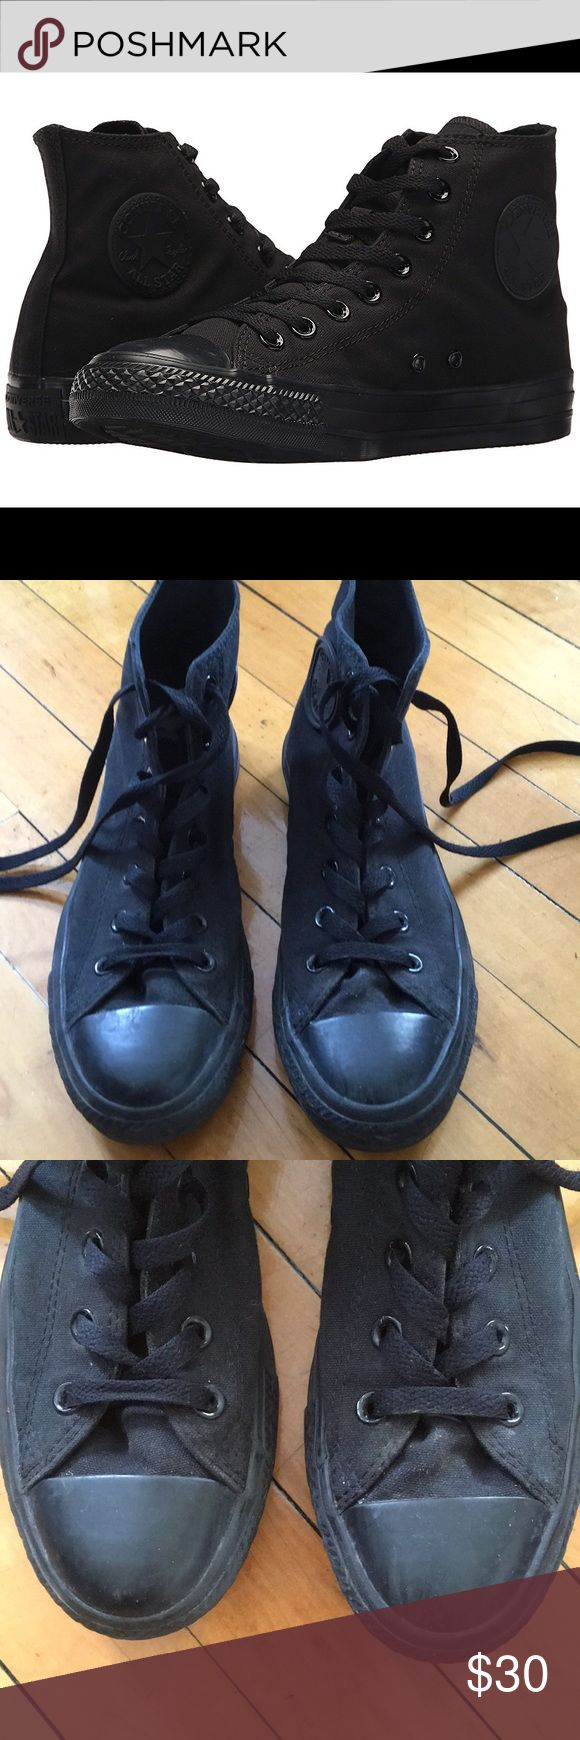 All black high top converse all stars All black converse all stars. Size 8 women/ 6 men. These have been worn several times and have some wear as shown in photos. There is a little dirt which could be easily removed on sides. Open to offers! Converse Shoes Sneakers